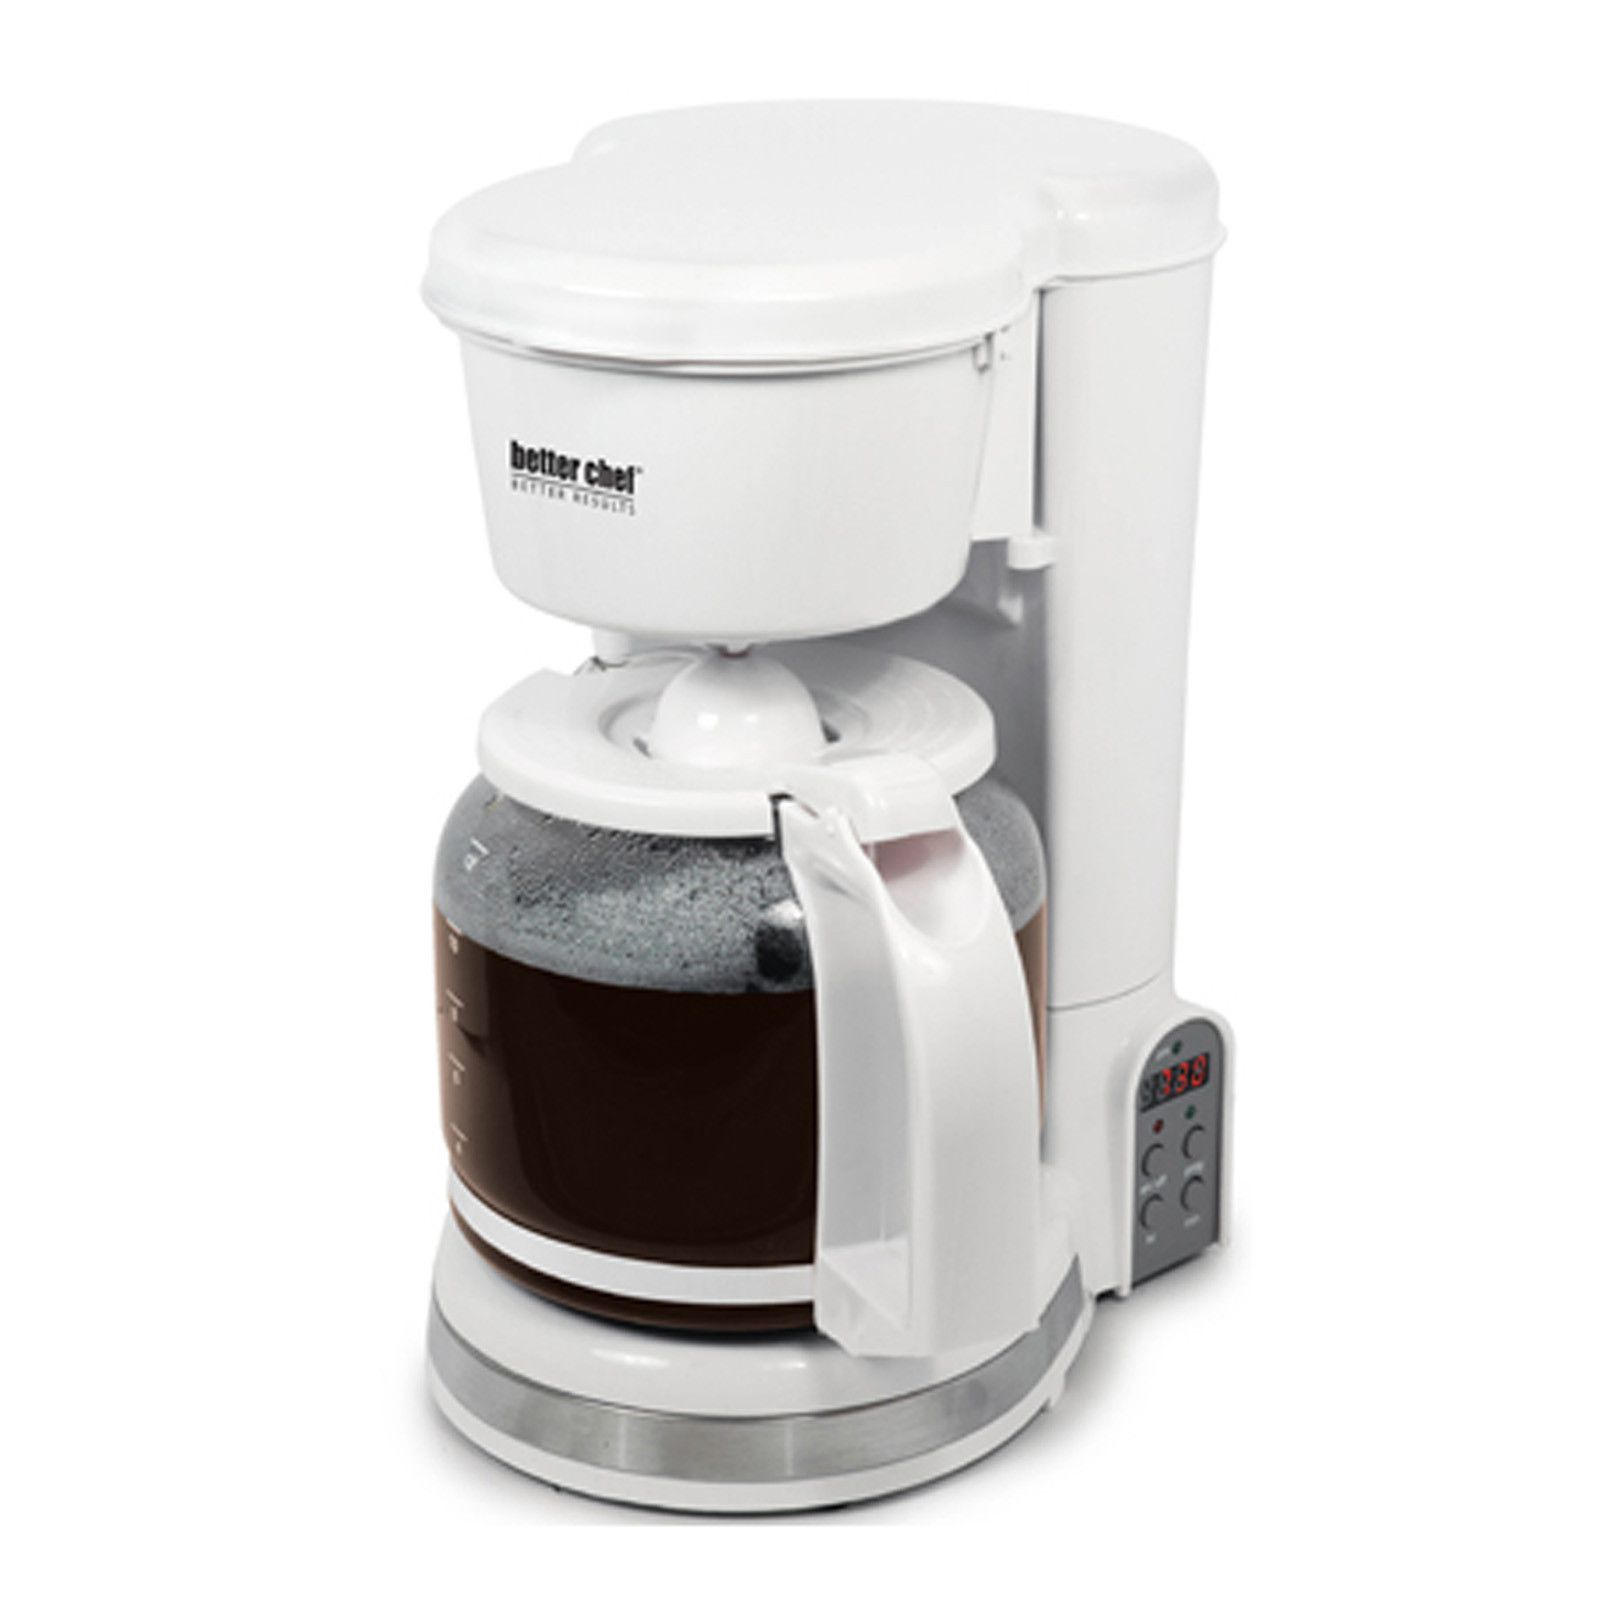 Better chef cup digital programmable coffeemaker white